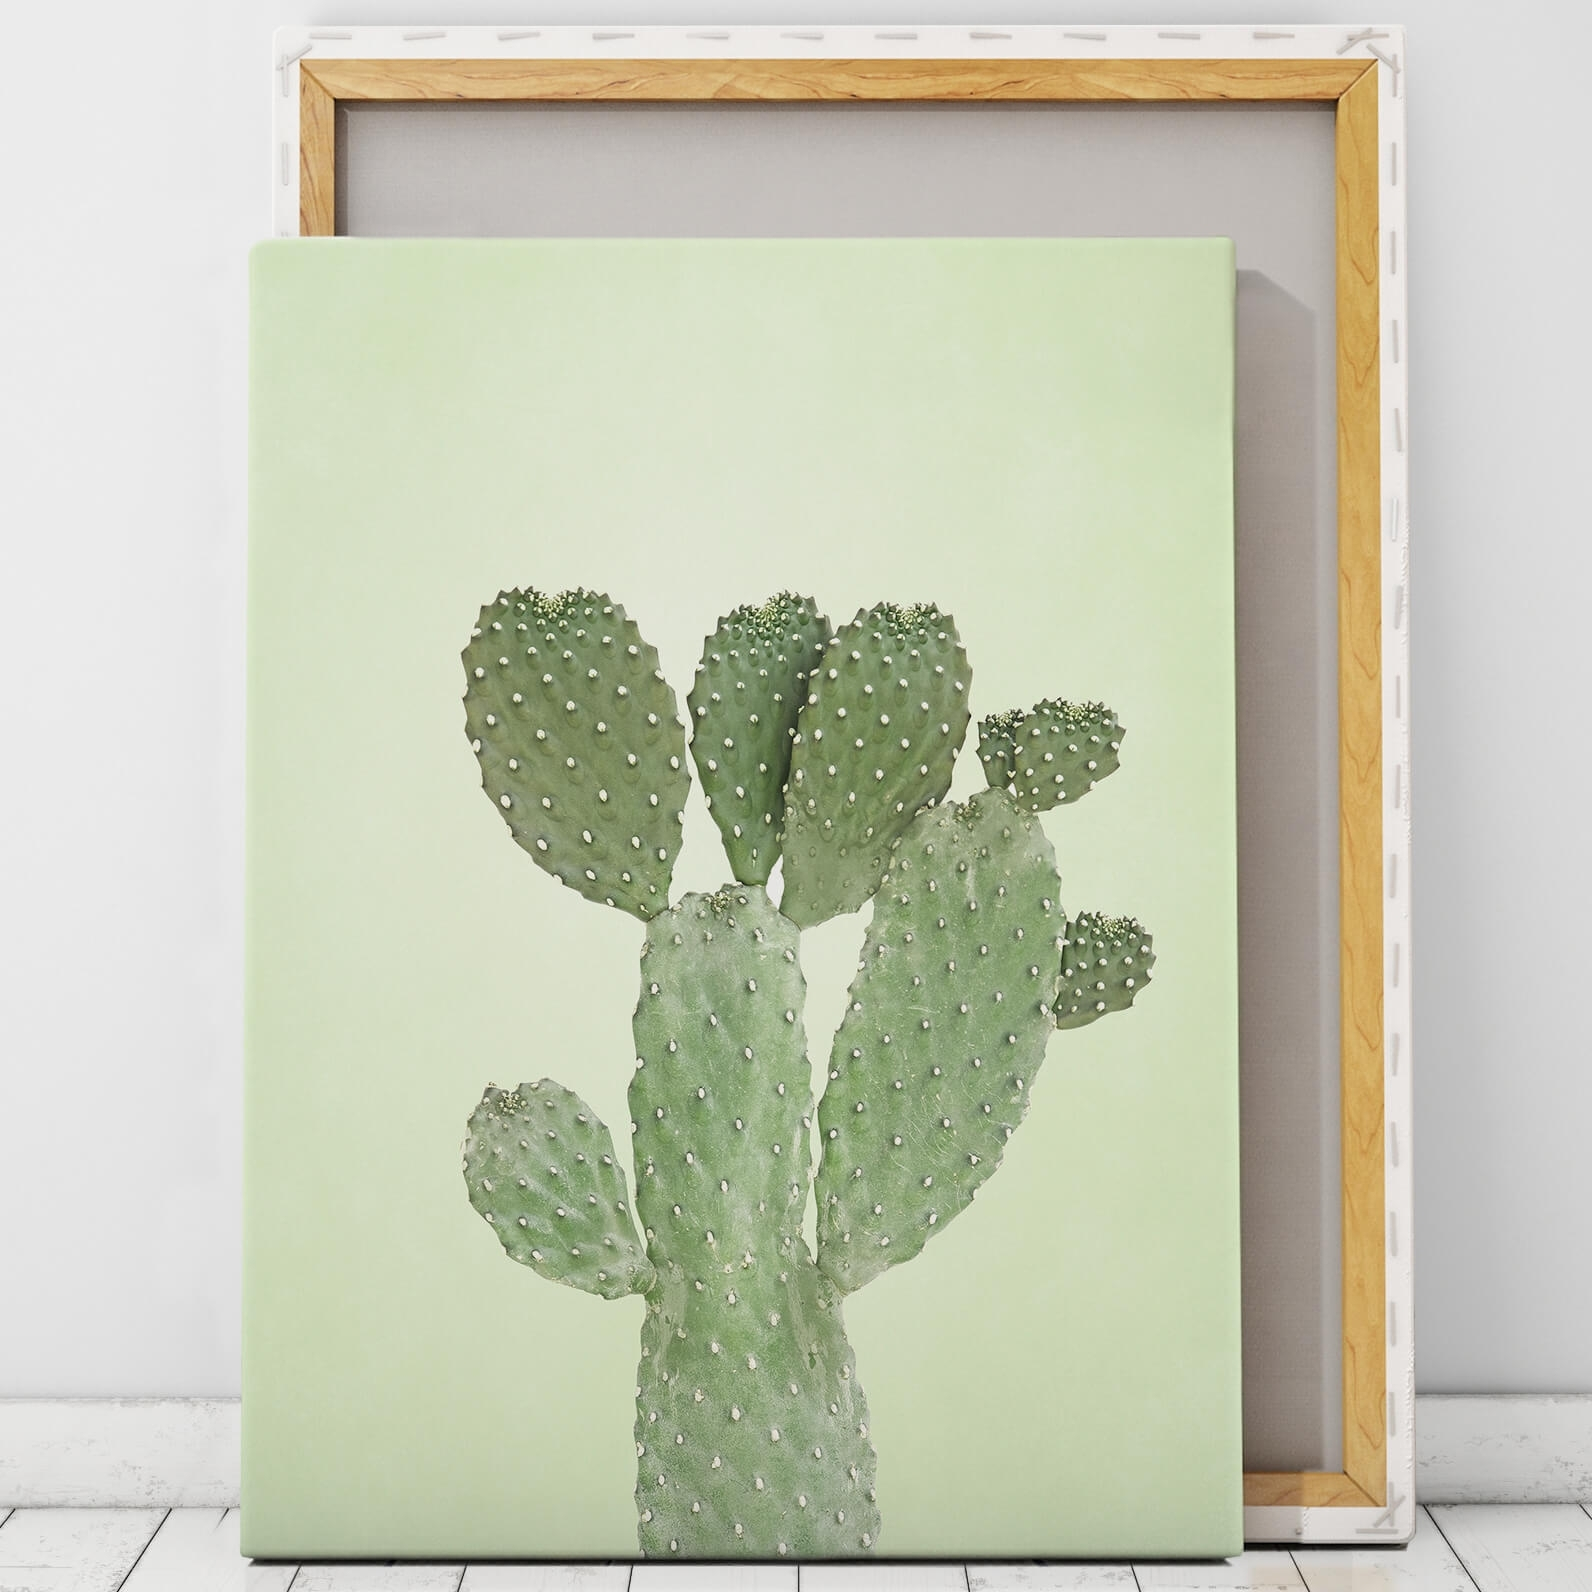 Green Cactus Wall Art Print | Artworld Art World Intended For Most Recent Cactus Wall Art (View 15 of 20)